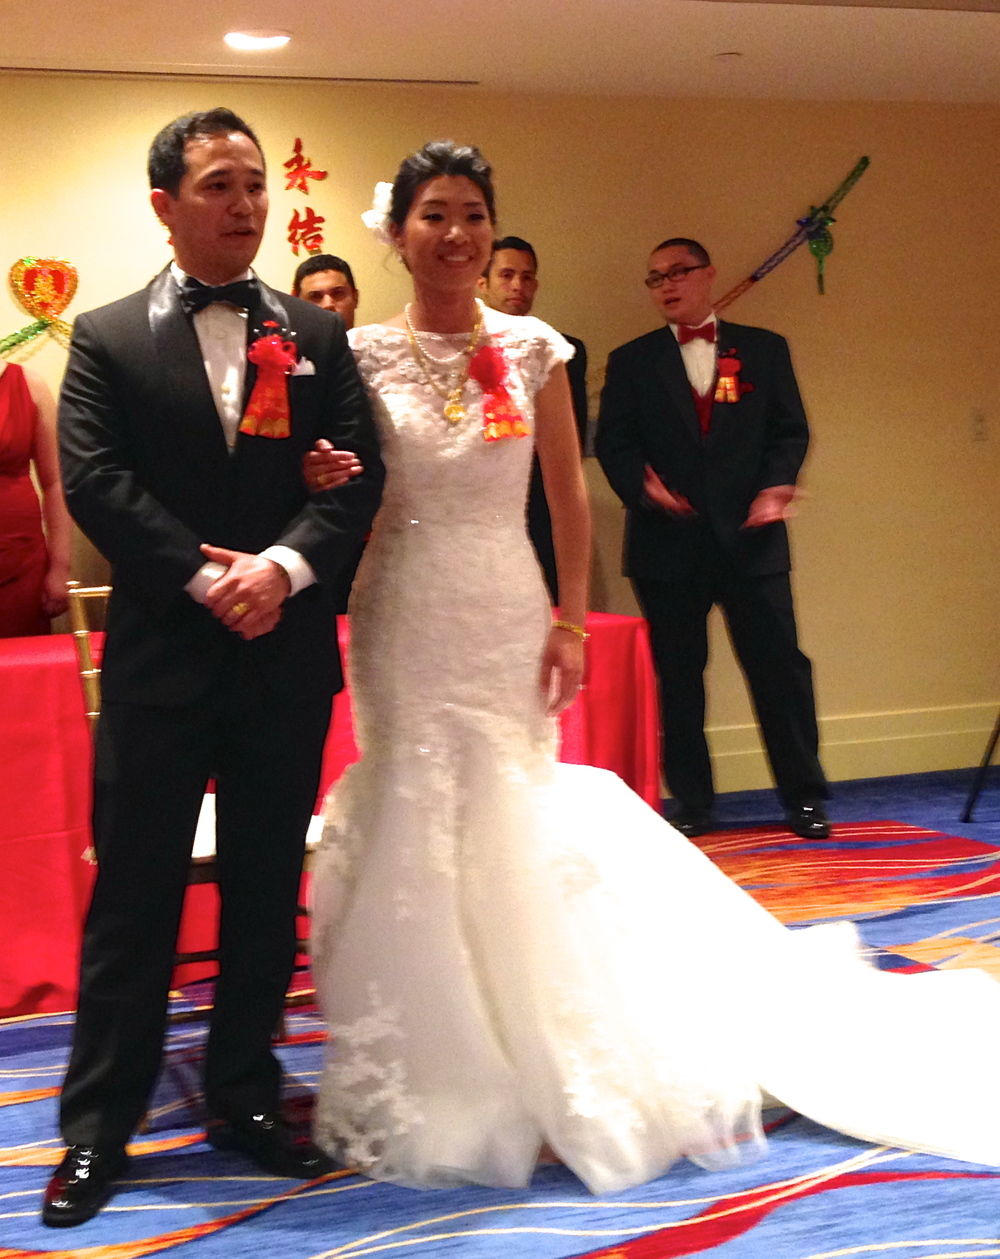 A Chinese/Jewish Wedding